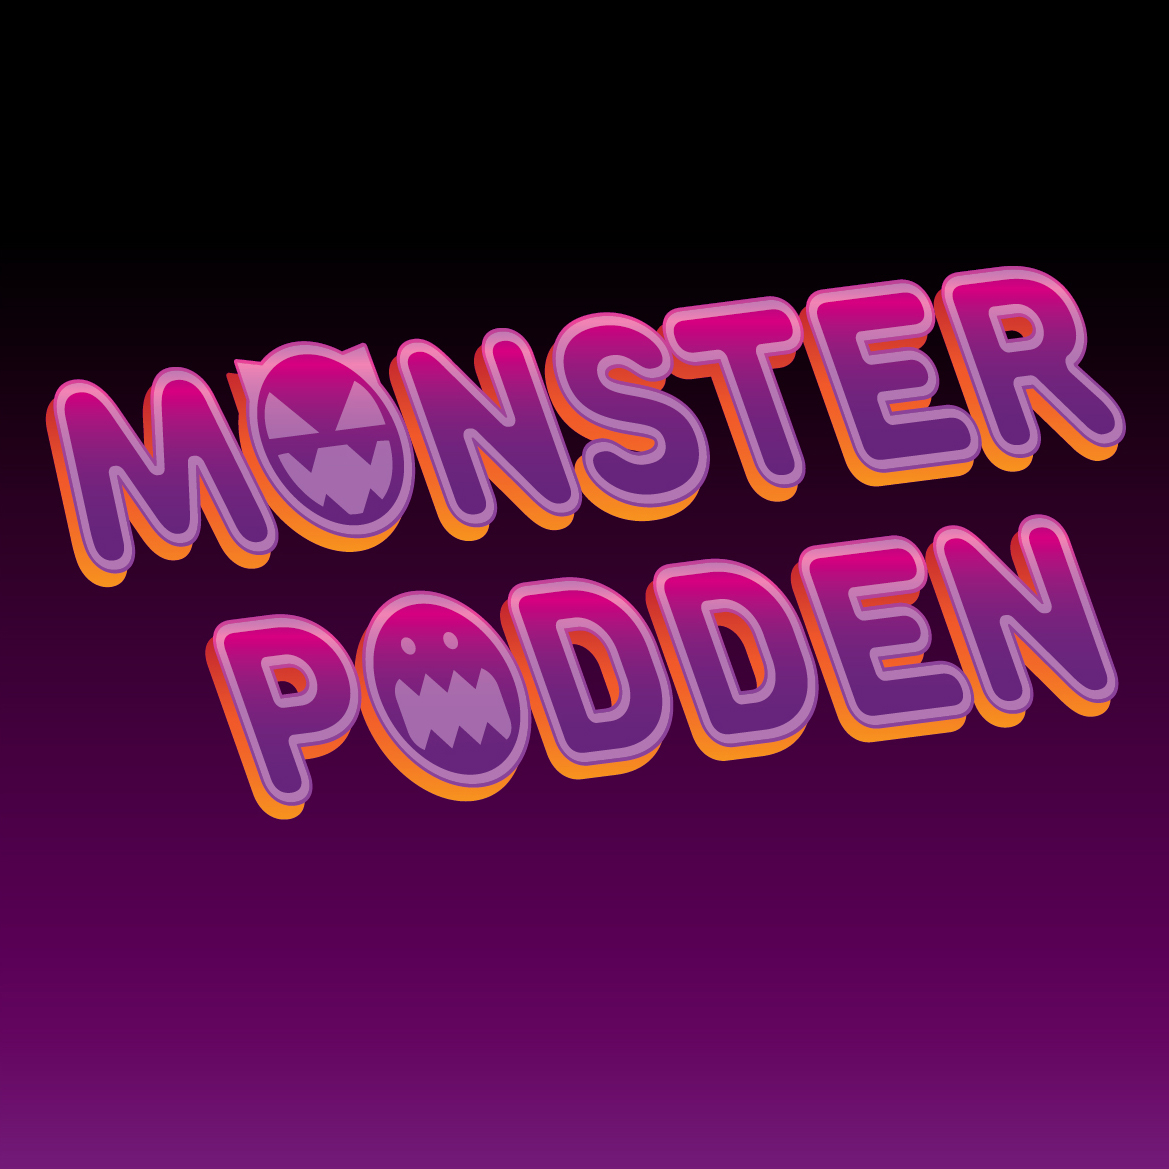 Monsterpodden